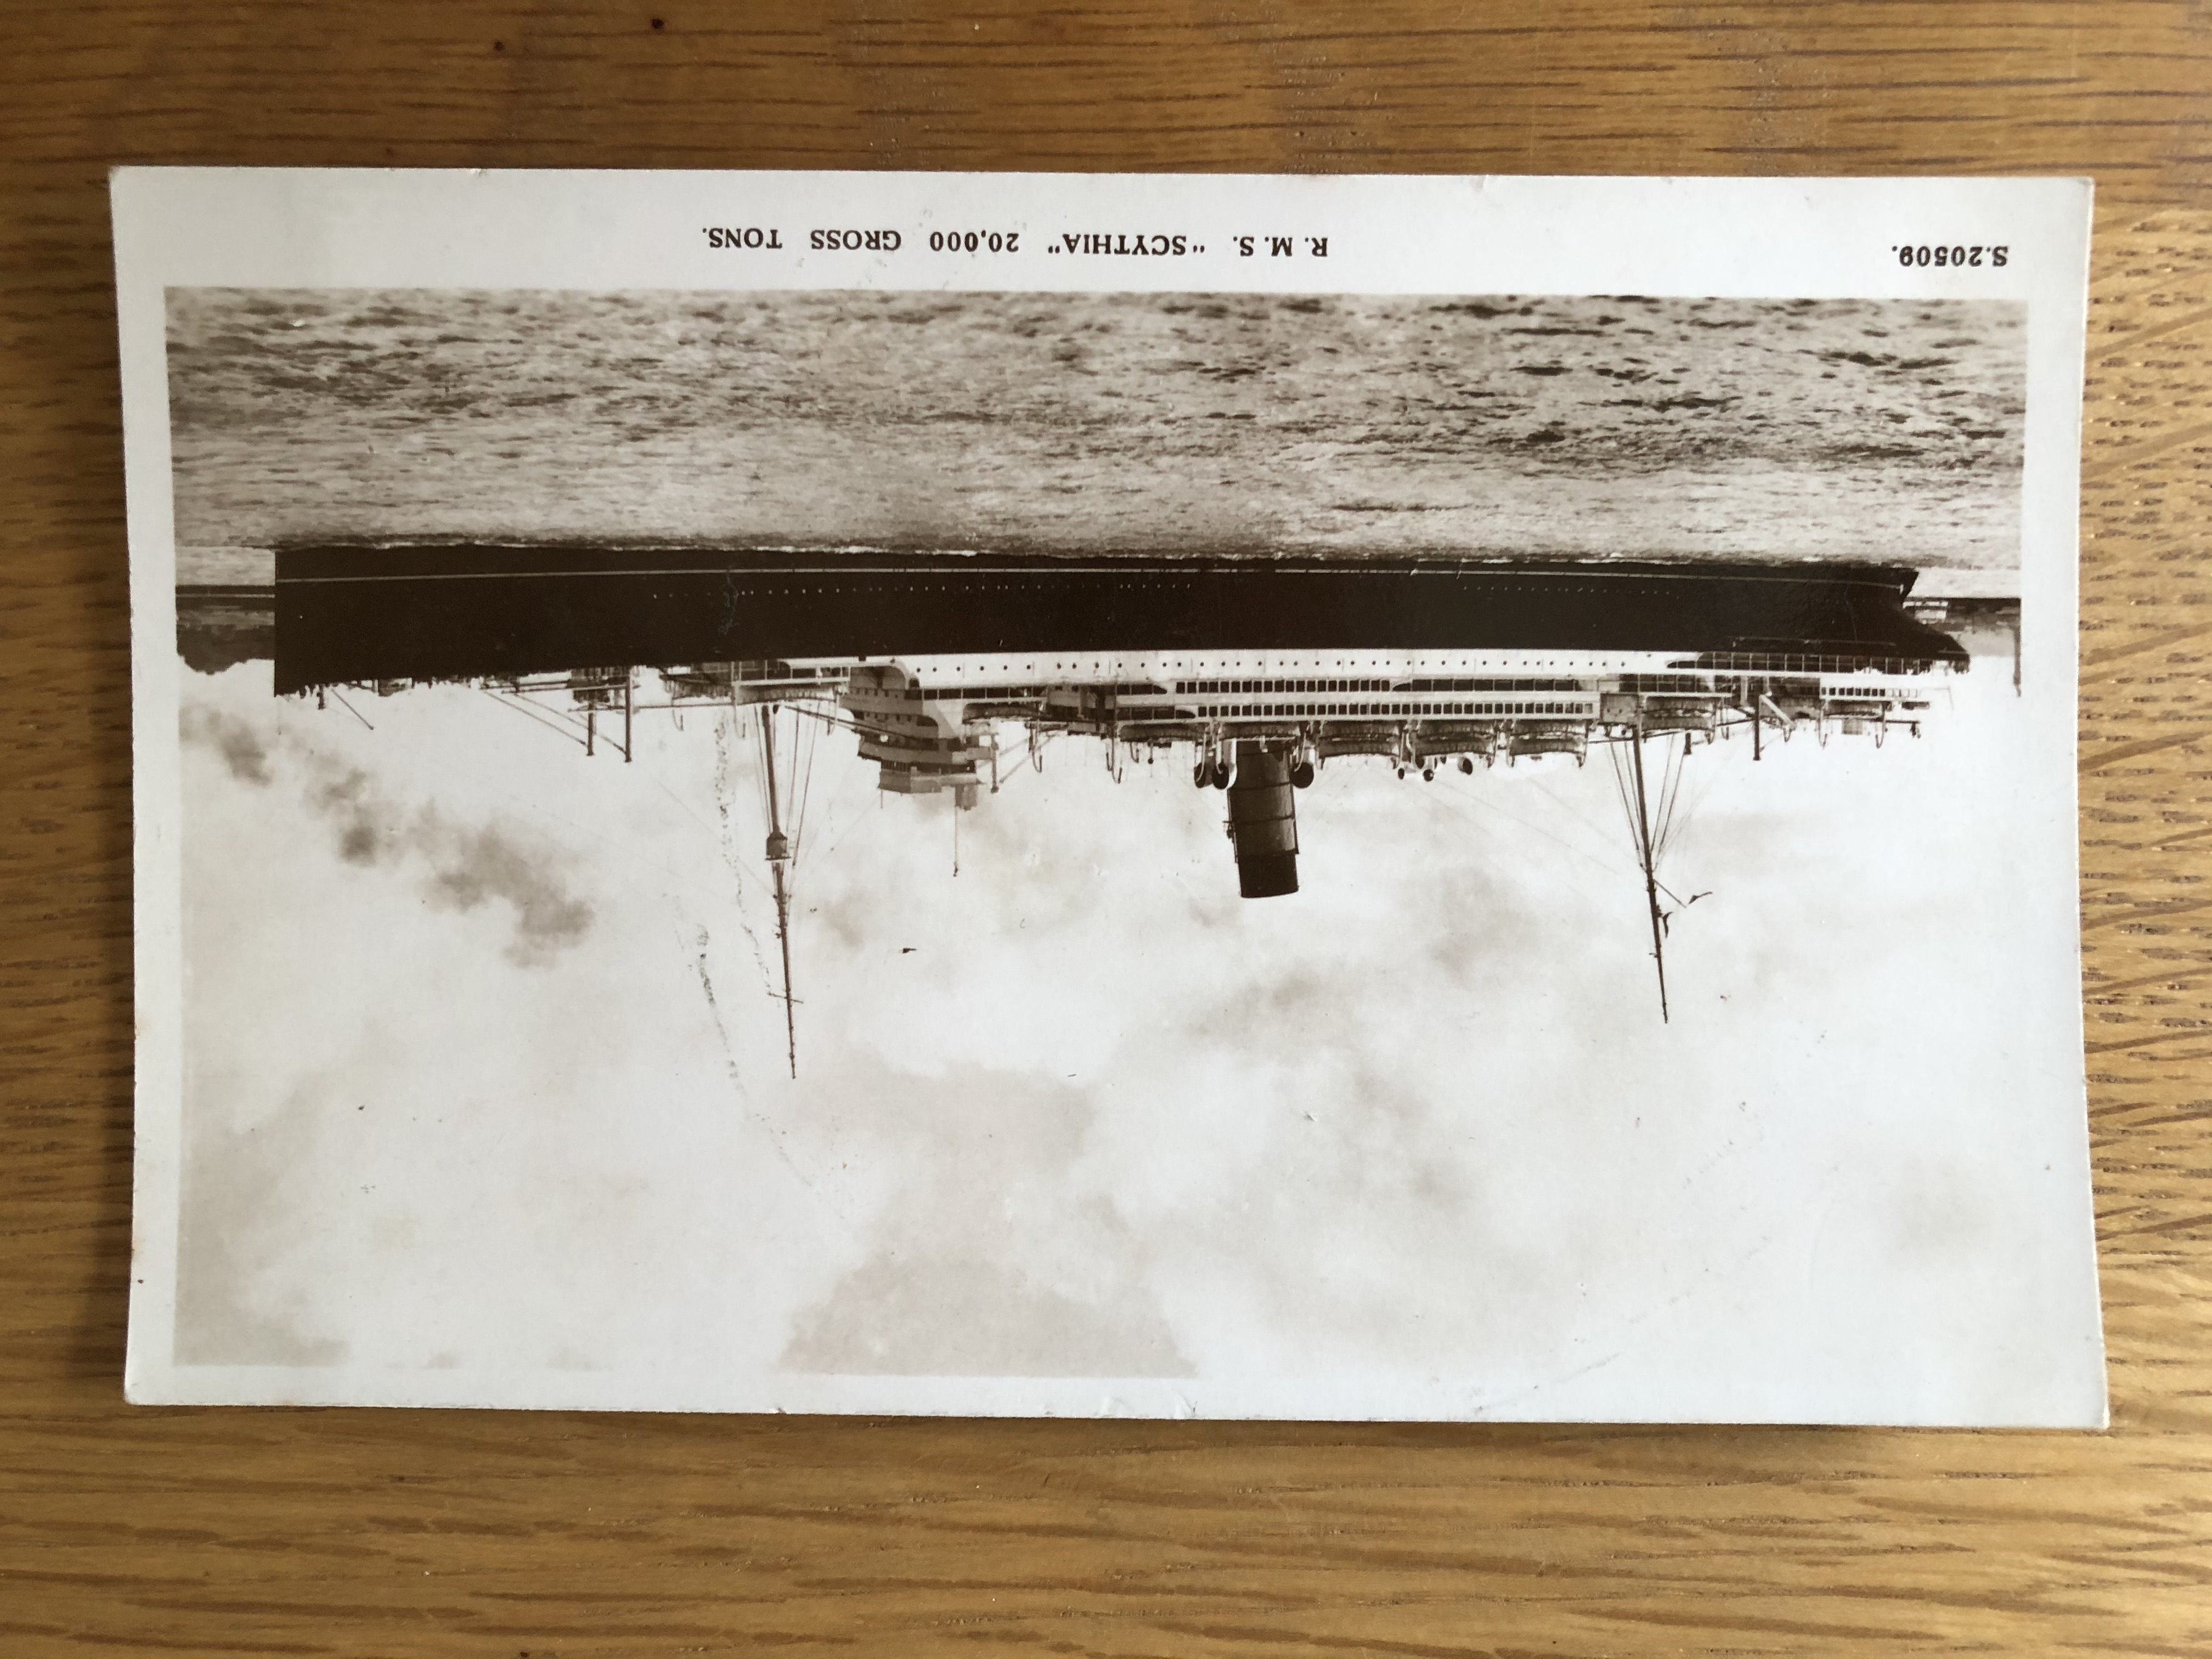 POSTCARD FROM THE ROYAL MAIL LINE VESSEL THE RMS SCYTHIA